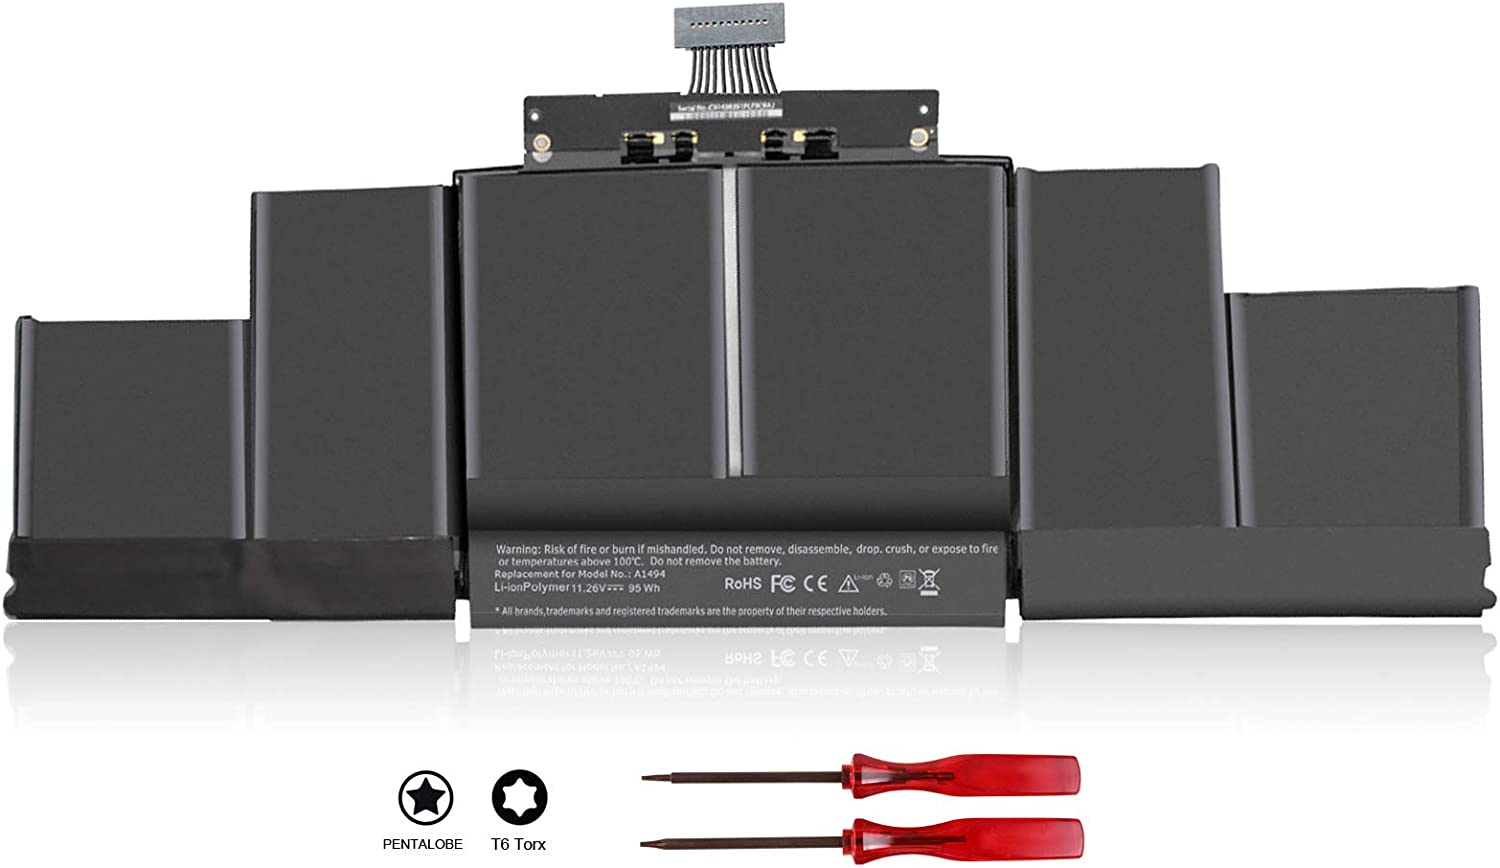 A1494 A1618 Laptop Battery Compatible with MacBook Pro 15 inch Retina A1398 Late 2013 Mid 2014 2015,ME293 ME294 MGXA2 MGXC2 MJLQ2 MJLT2 MJLU2 ME293LL/A ME294LL/A MGXA2LL/A MGXC2LL/A 020-00079